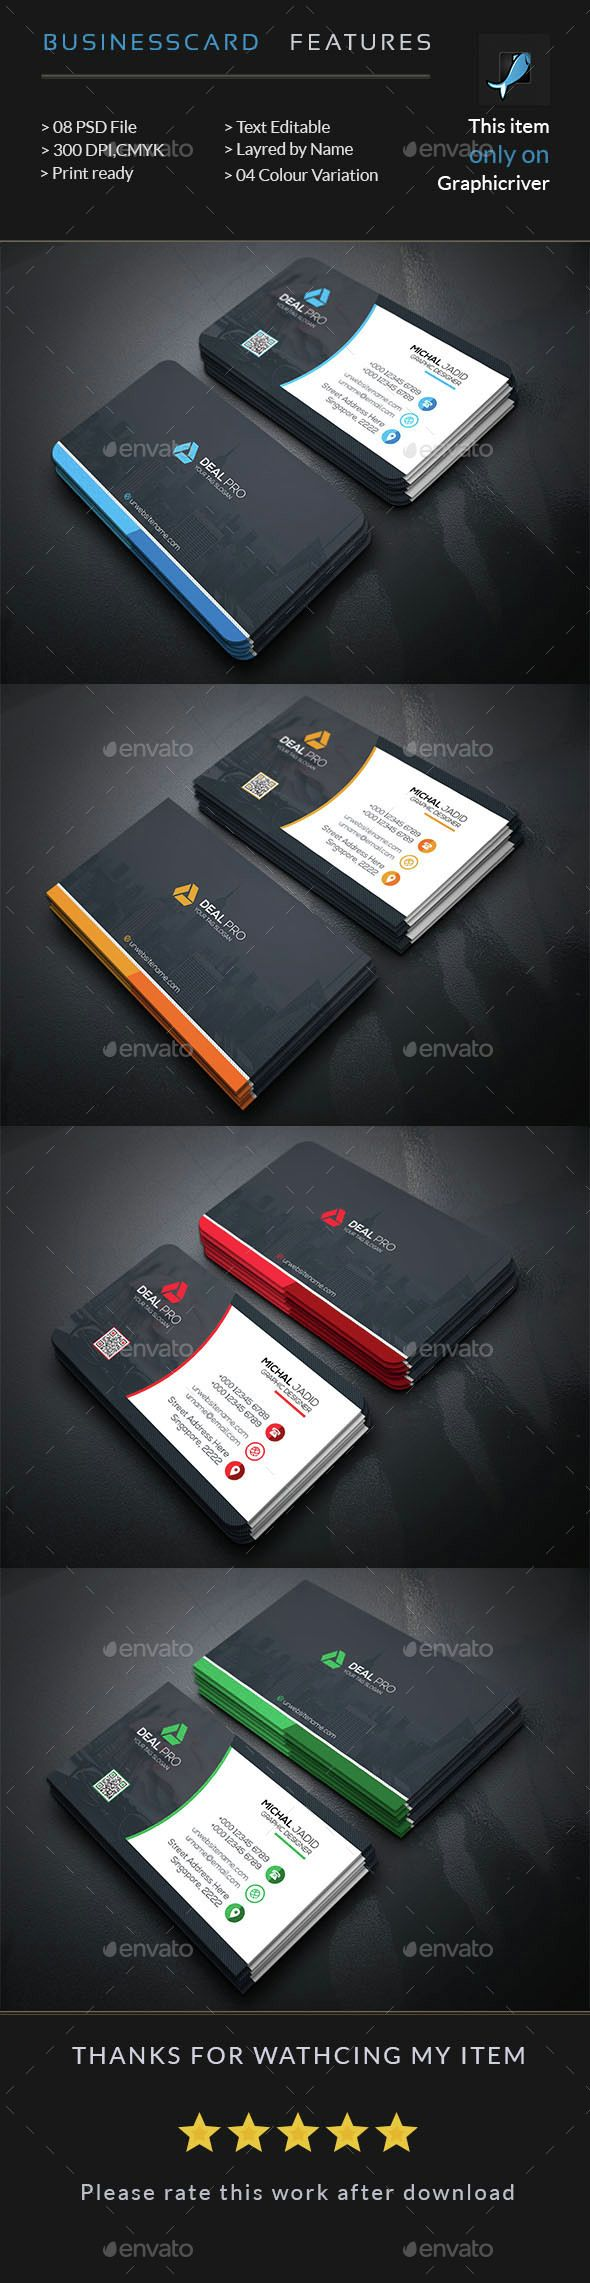 Corporate Business Card — Photoshop PSD #pack #landscape • Available here → https://graphicriver.net/item/corporate-business-card/14920557?ref=pxcr